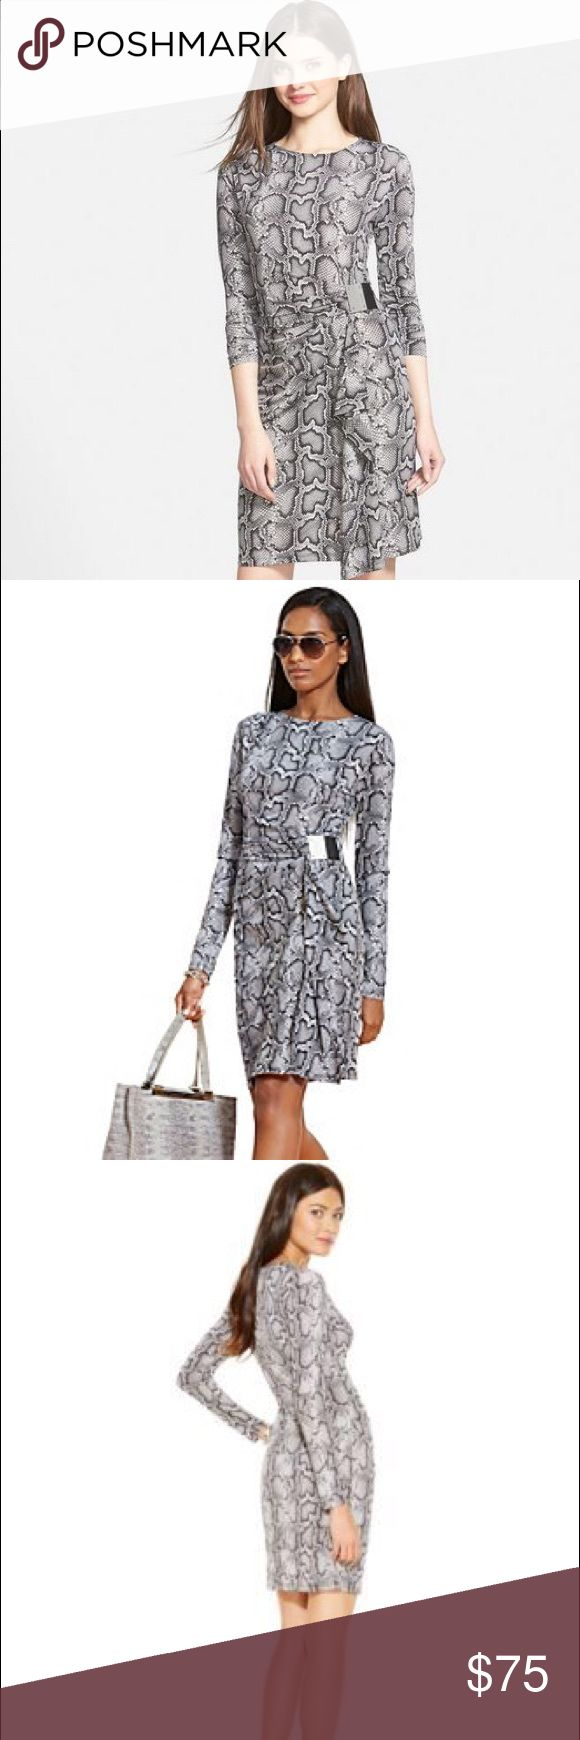 """NWOT Michael Kors """"Cobra"""" Print Dreas New MICHAEL Michael Kors Cobra print dress. The buckle gathers the silhouette for a figure defining faux-wrap. Very polished and classic look! Hidden back-zip closure. Brand new and has not been worn. I am usually a Small or 2 and this size fit me well when I tried it! Michael Kors Dresses Long Sleeve"""